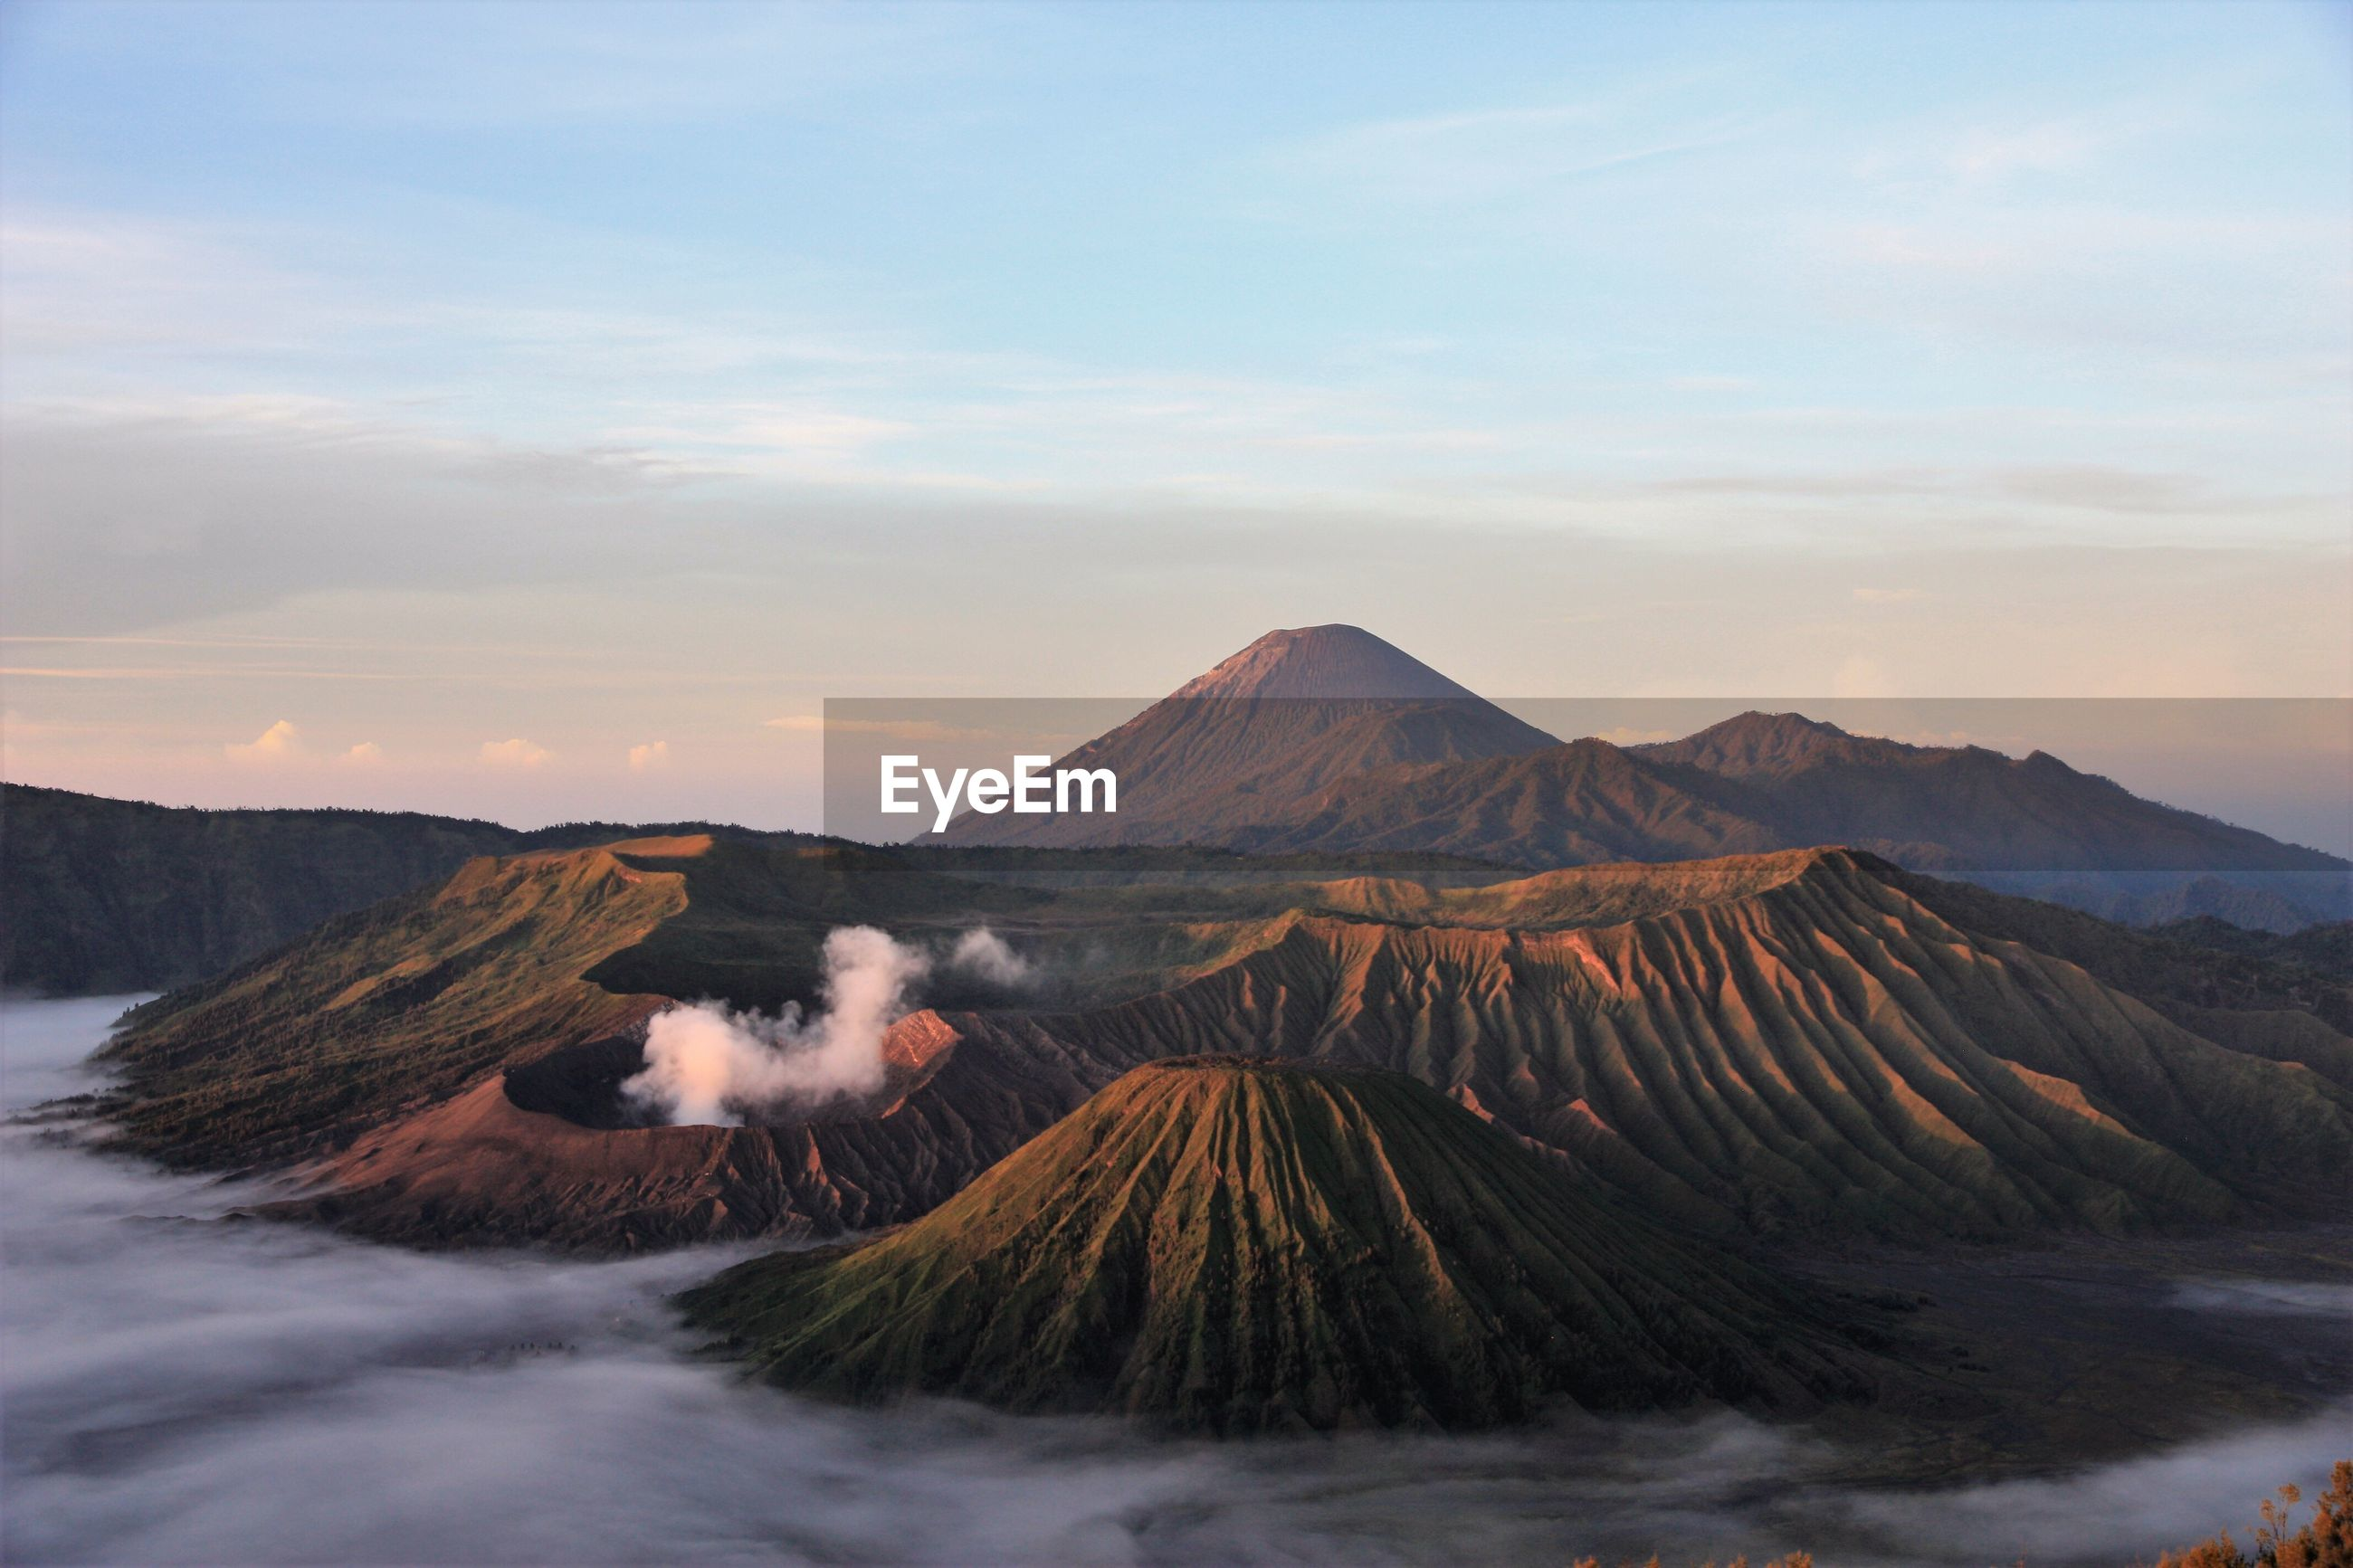 Scenic view of mountain range against sky in foggy weather